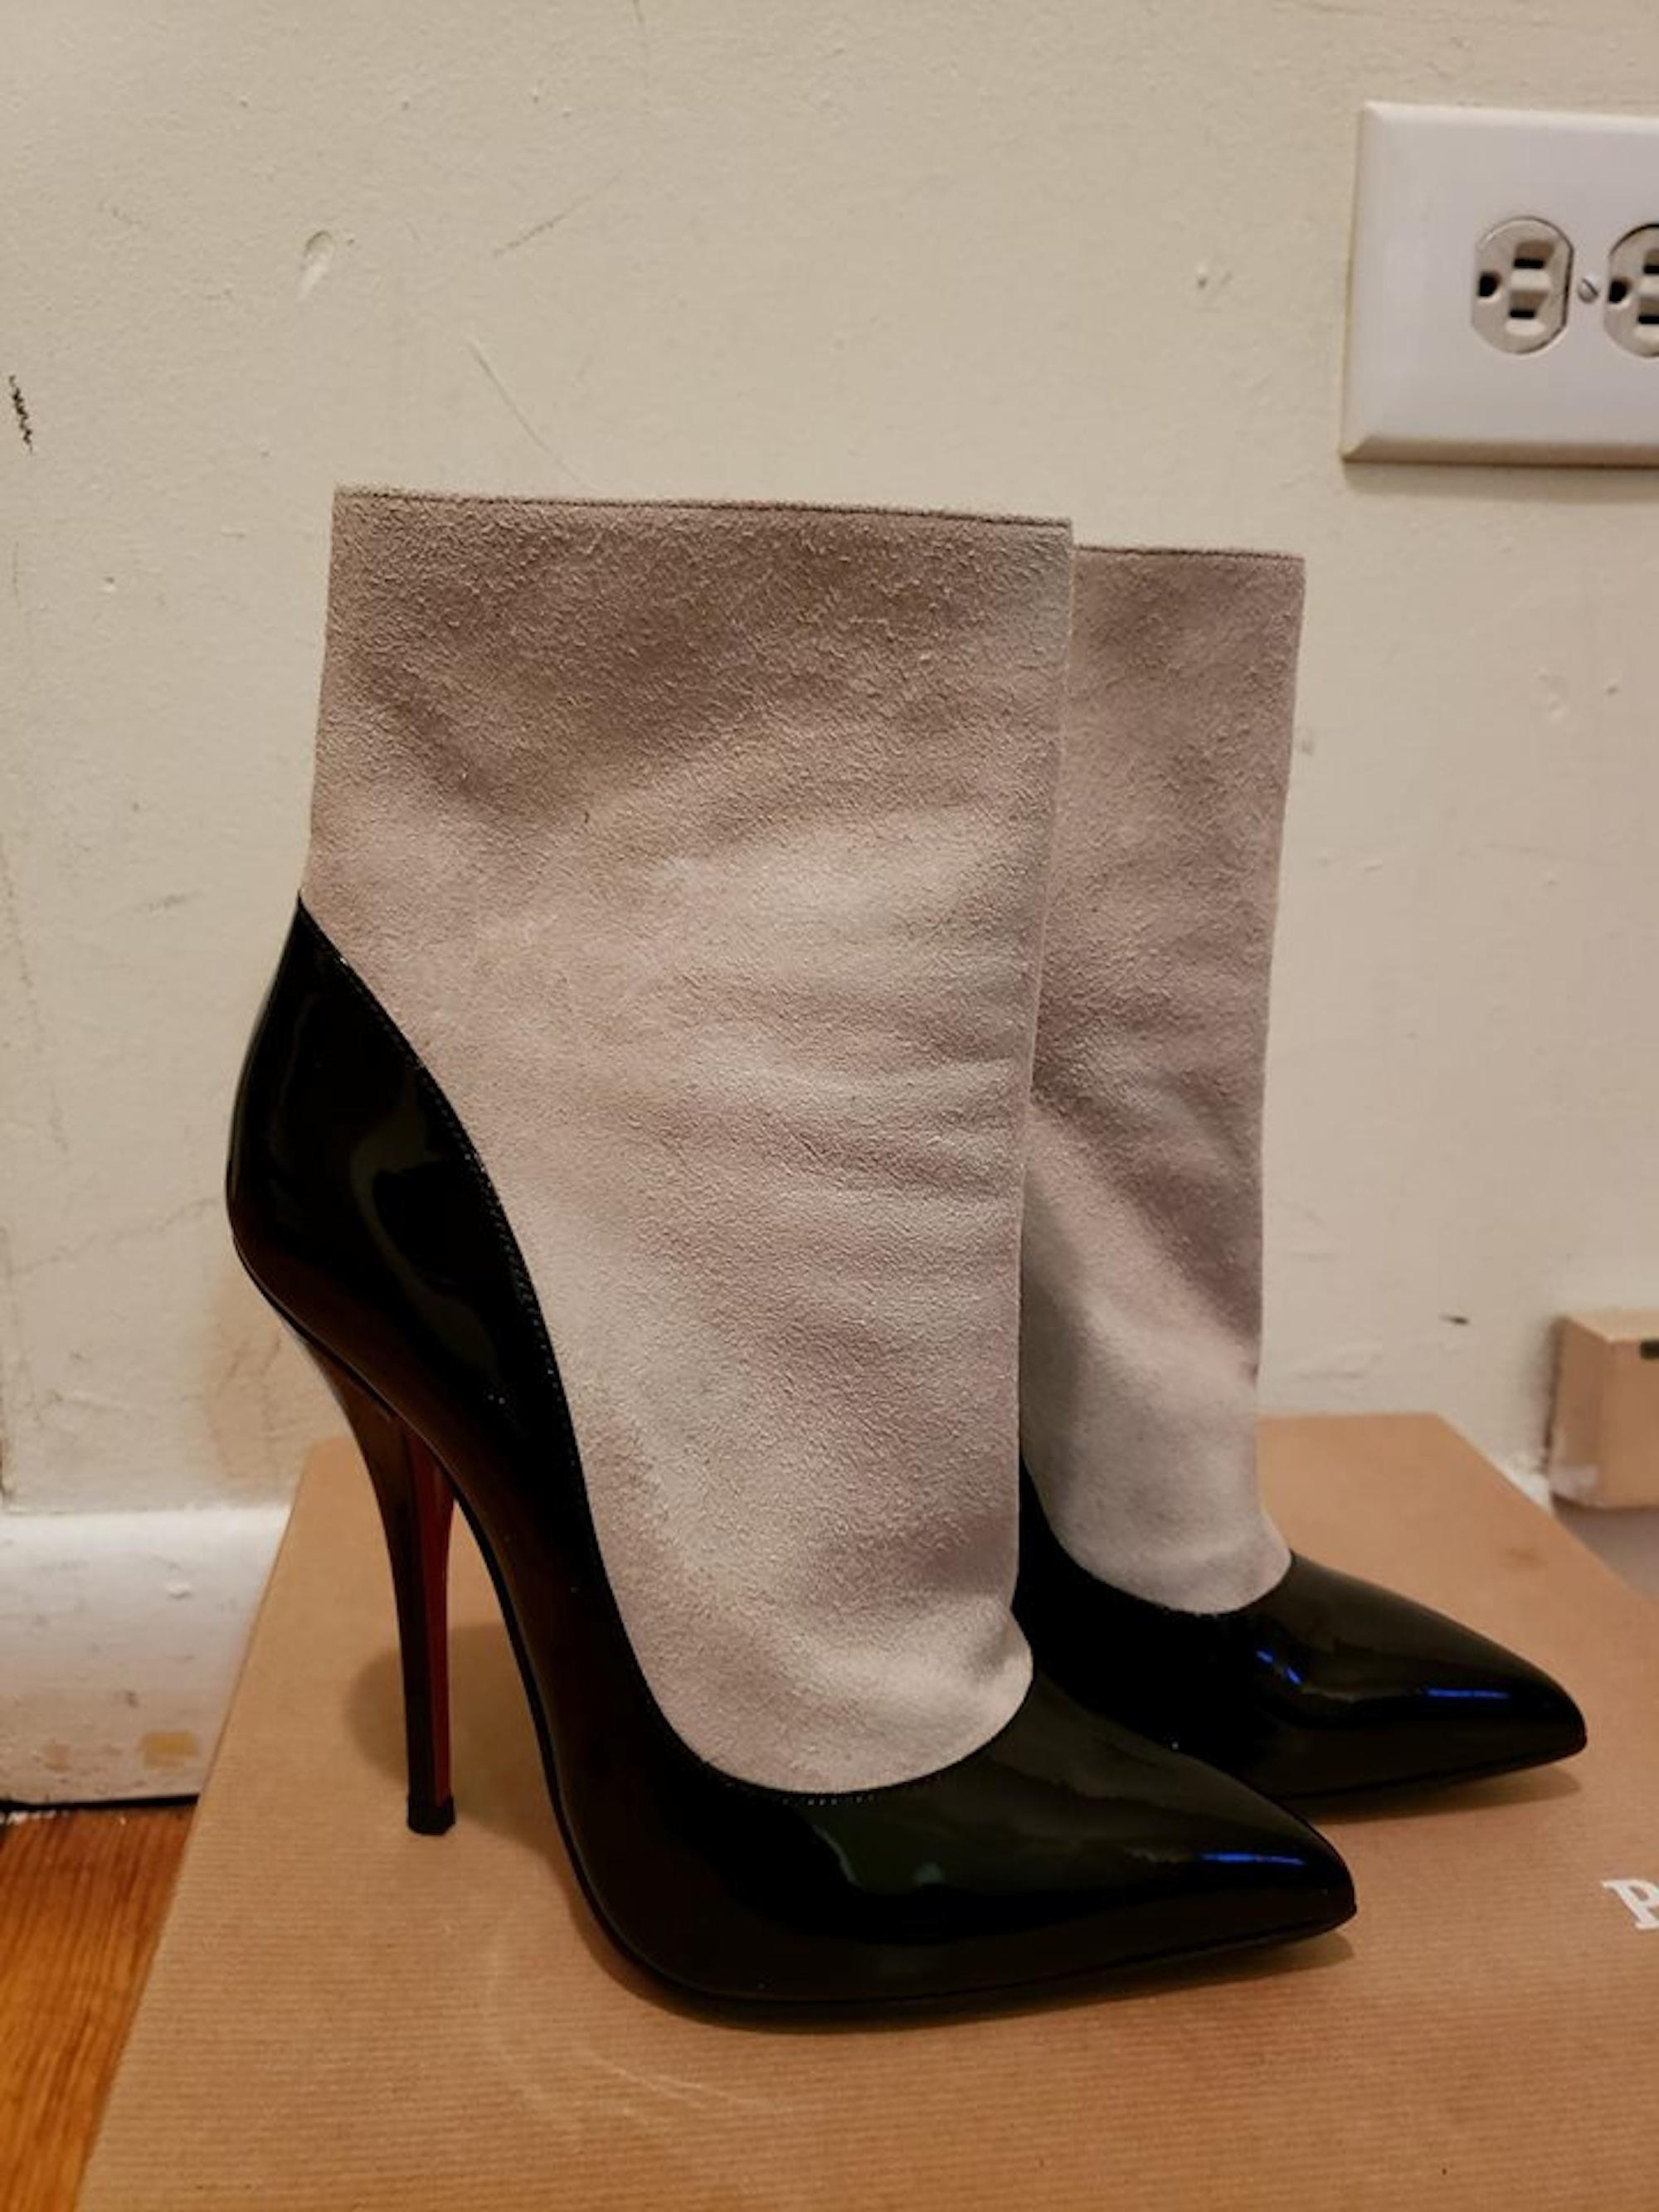 cb6730c43de ... Christian Louboutin Black Beige Patent Leather Suede Boots Booties Boots  Booties Boots ...